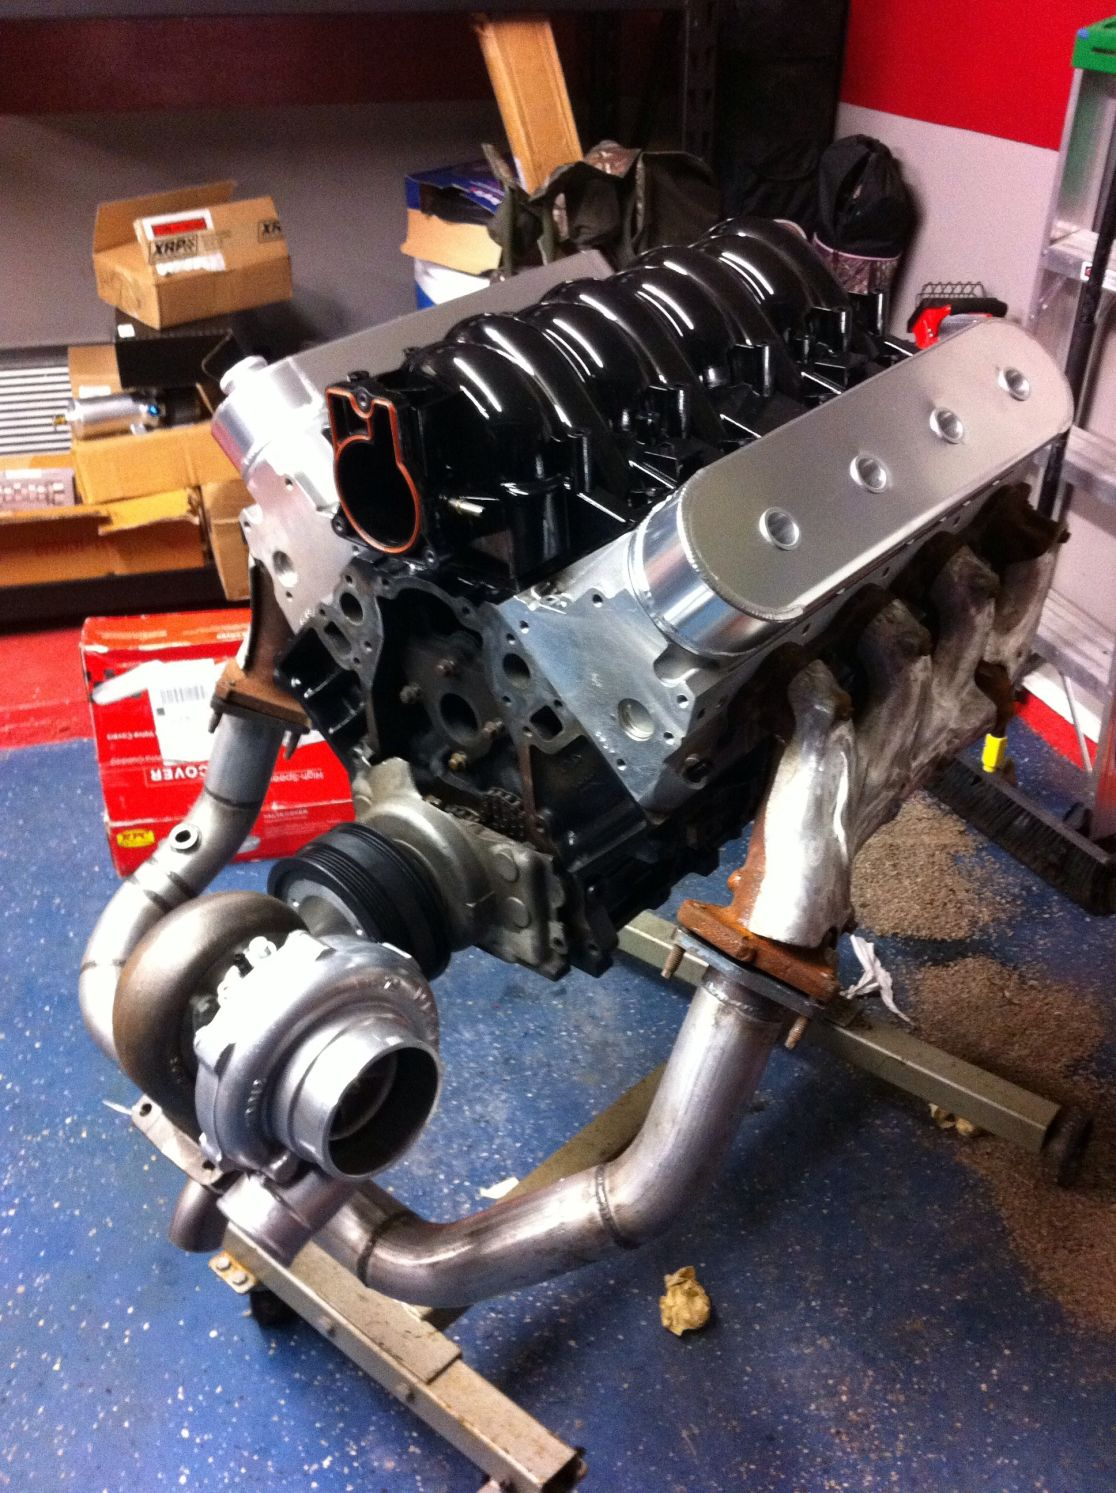 Turbo Camaro Z28 LS1 - 643whp Monster - For SaleEnthusiast Owned